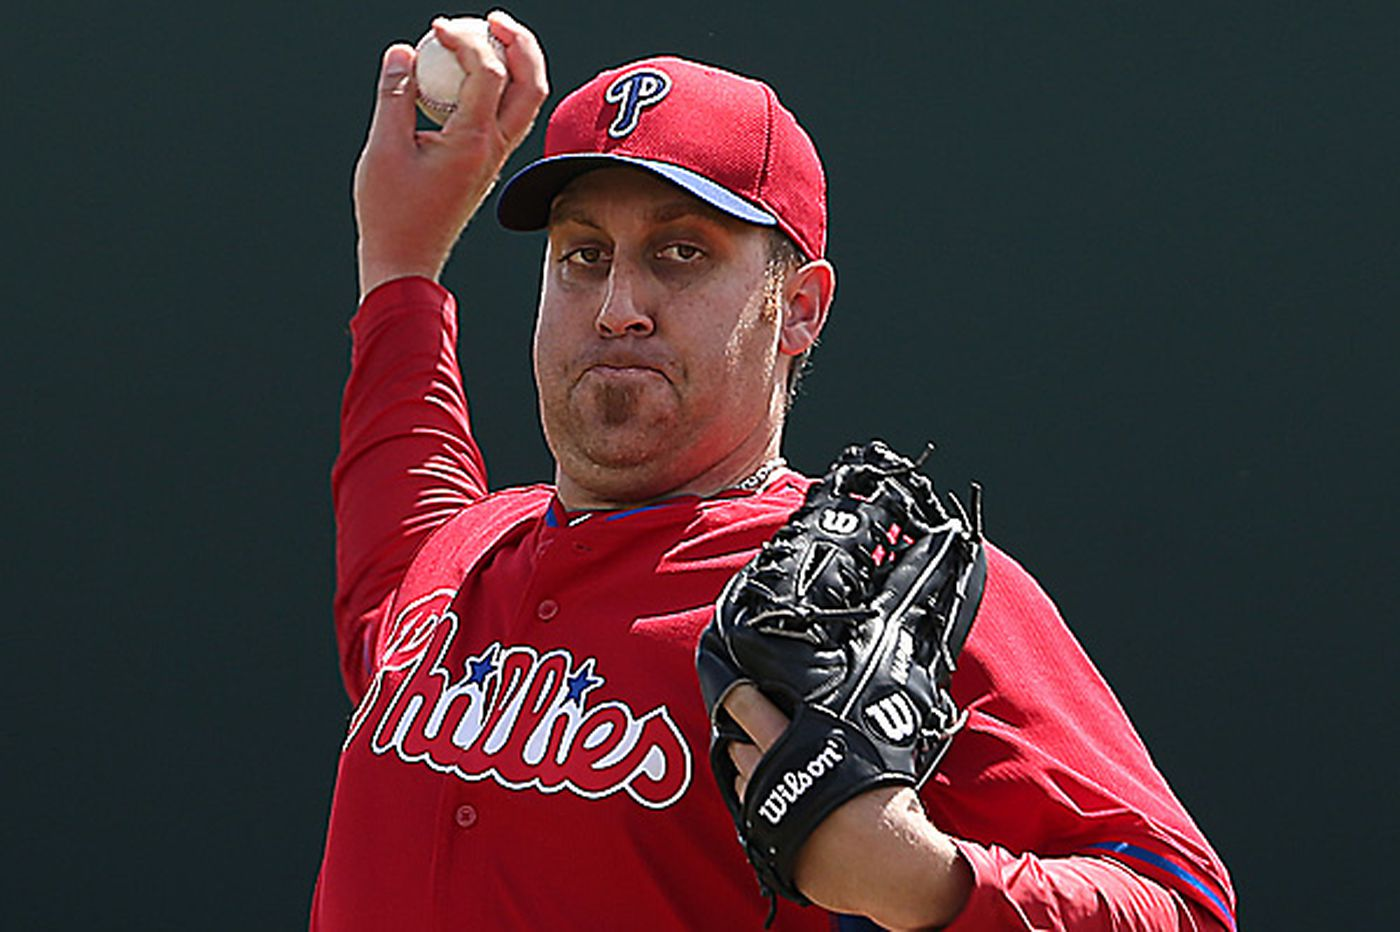 Phillies Notes: Harang scratched from start with back ailment